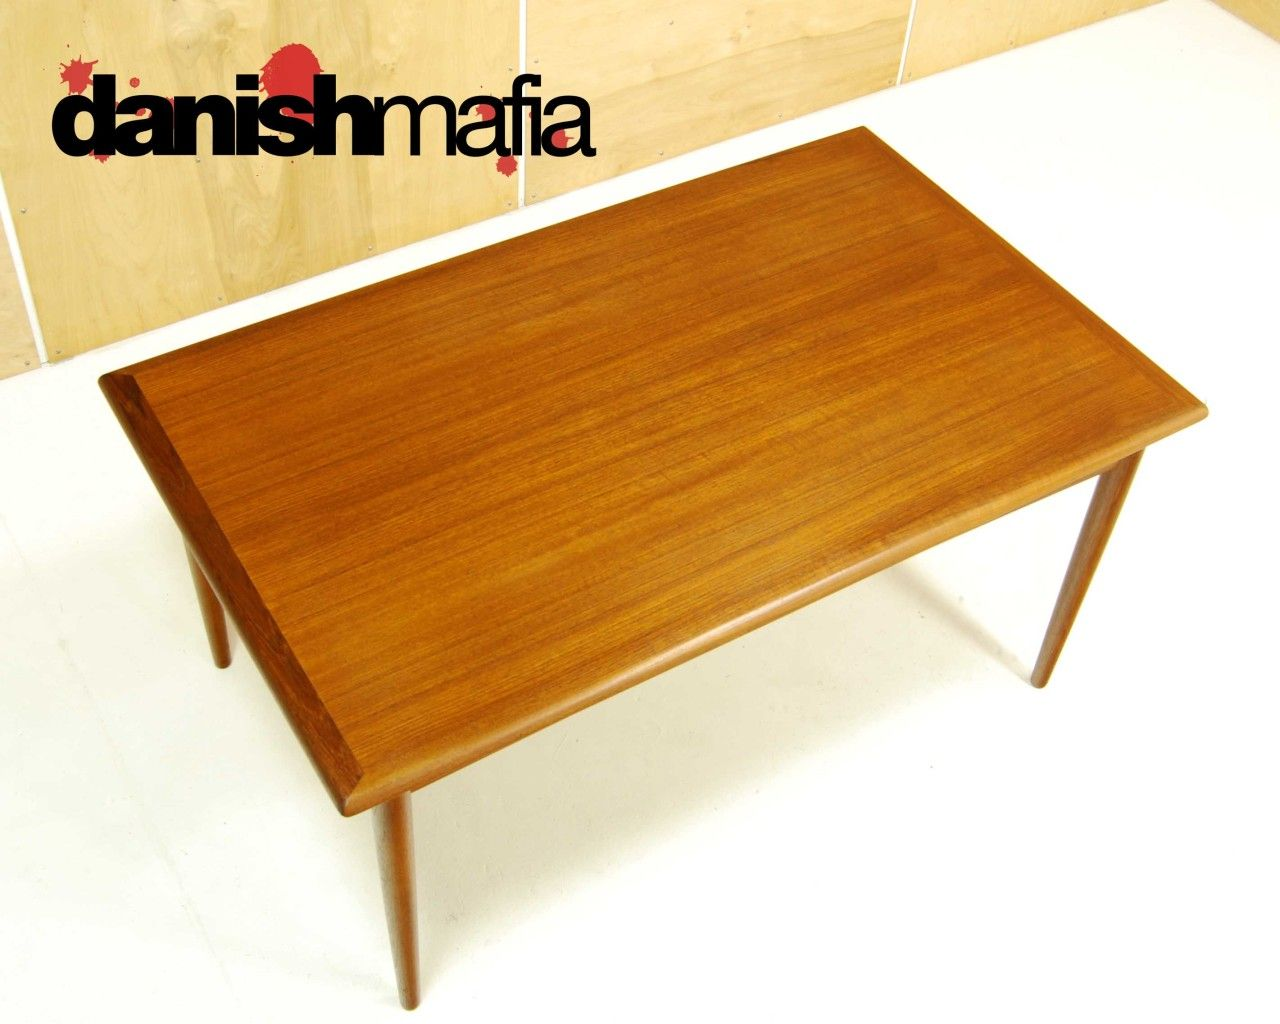 Scandinavian Teak Dining Room Furniture Mid Century Danish Modern Arne Vodder Teak Dining Table  Danish